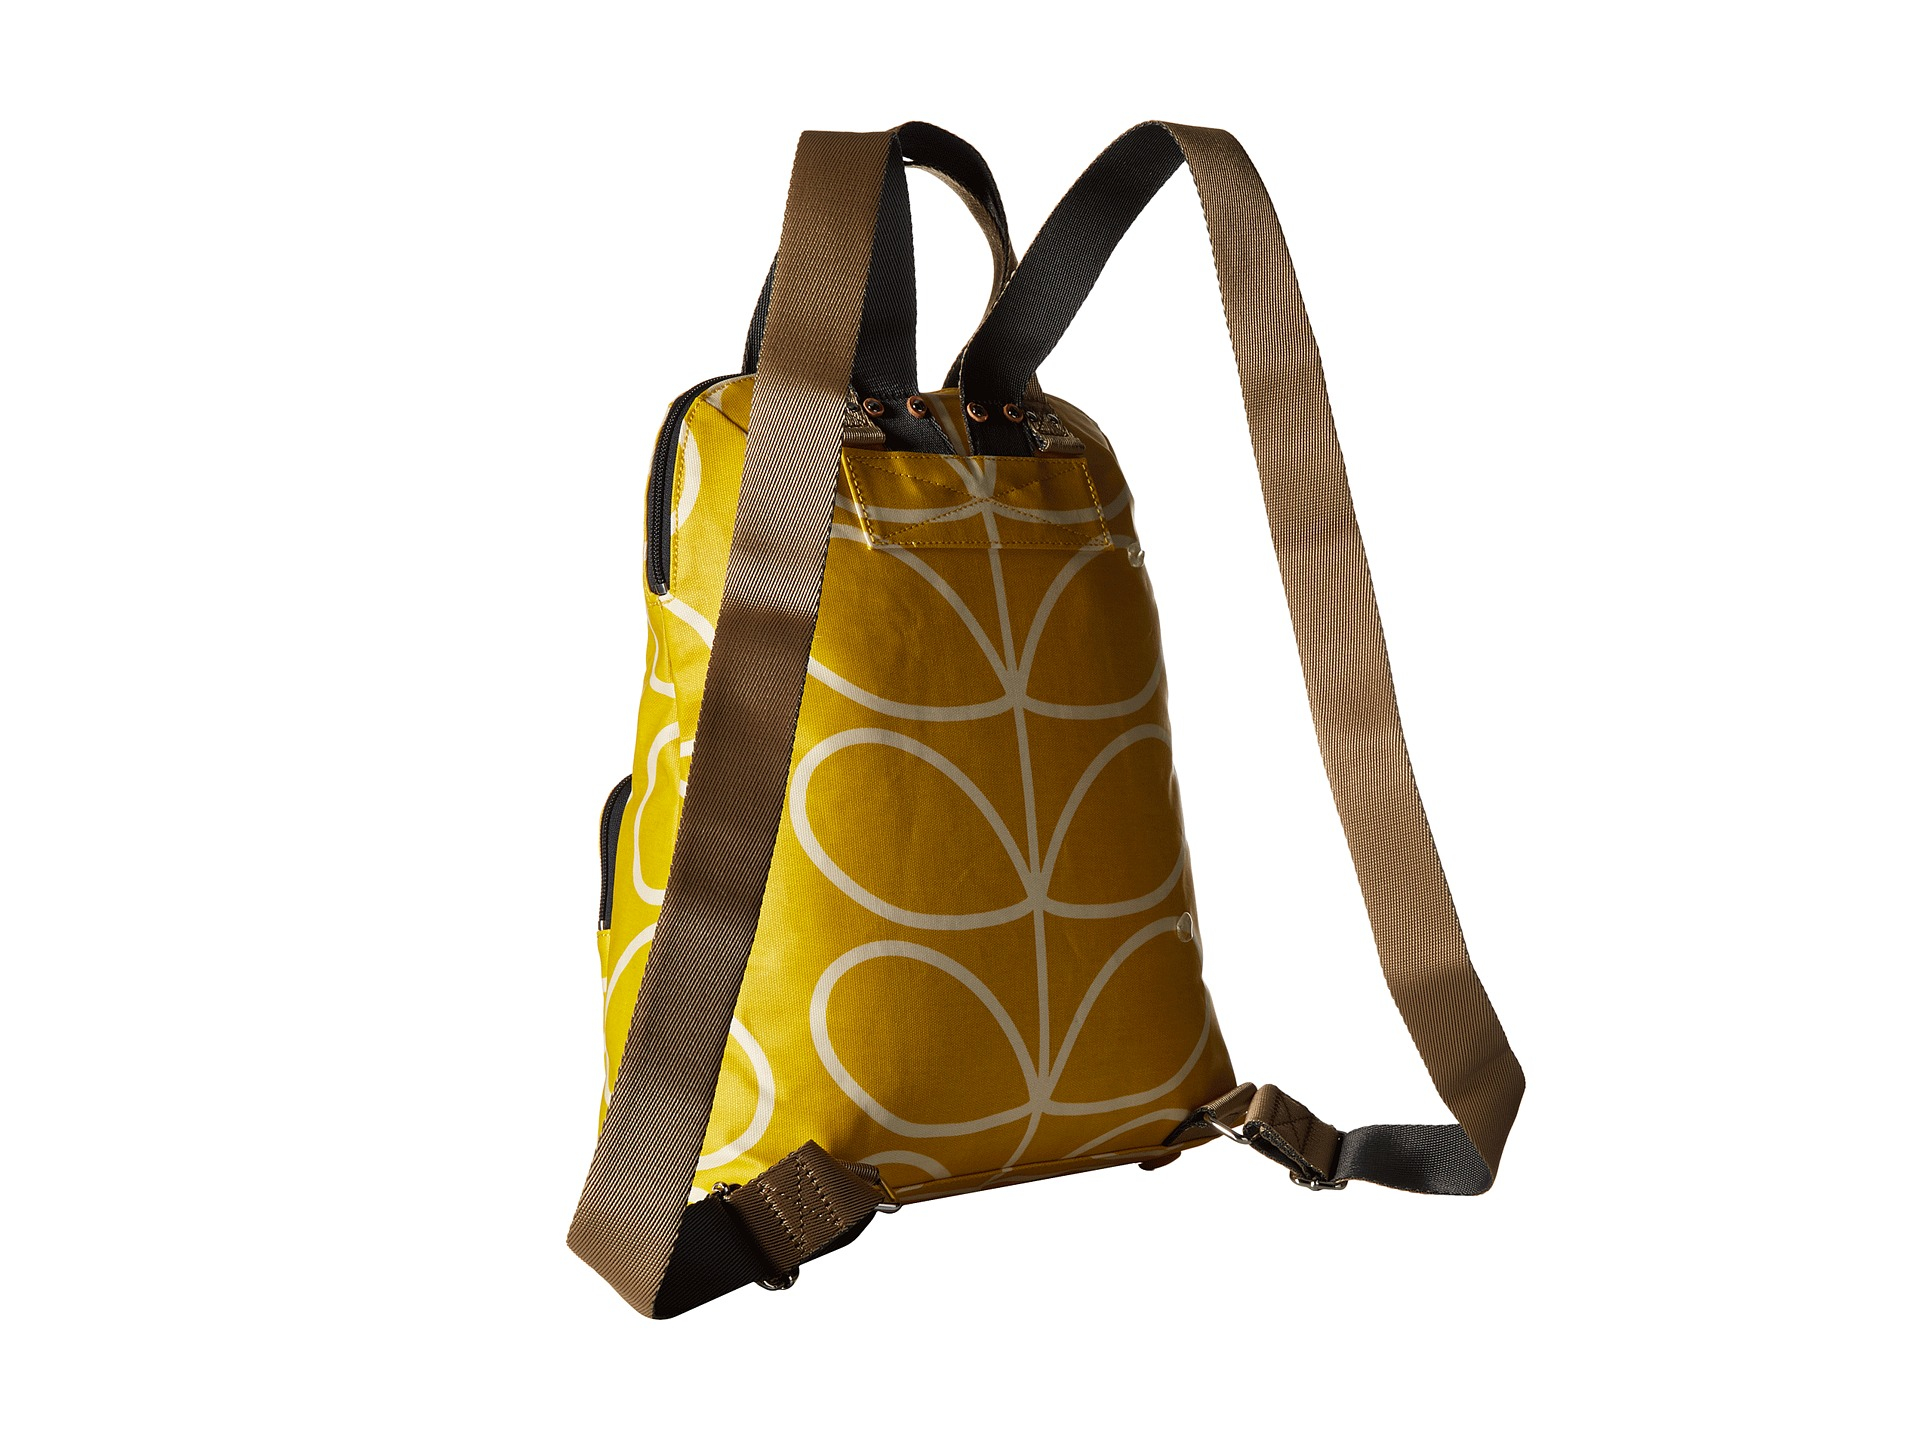 Lyst - Orla Kiely Giant Linear Stem Backpack Tote in Yellow bacc3c4107641